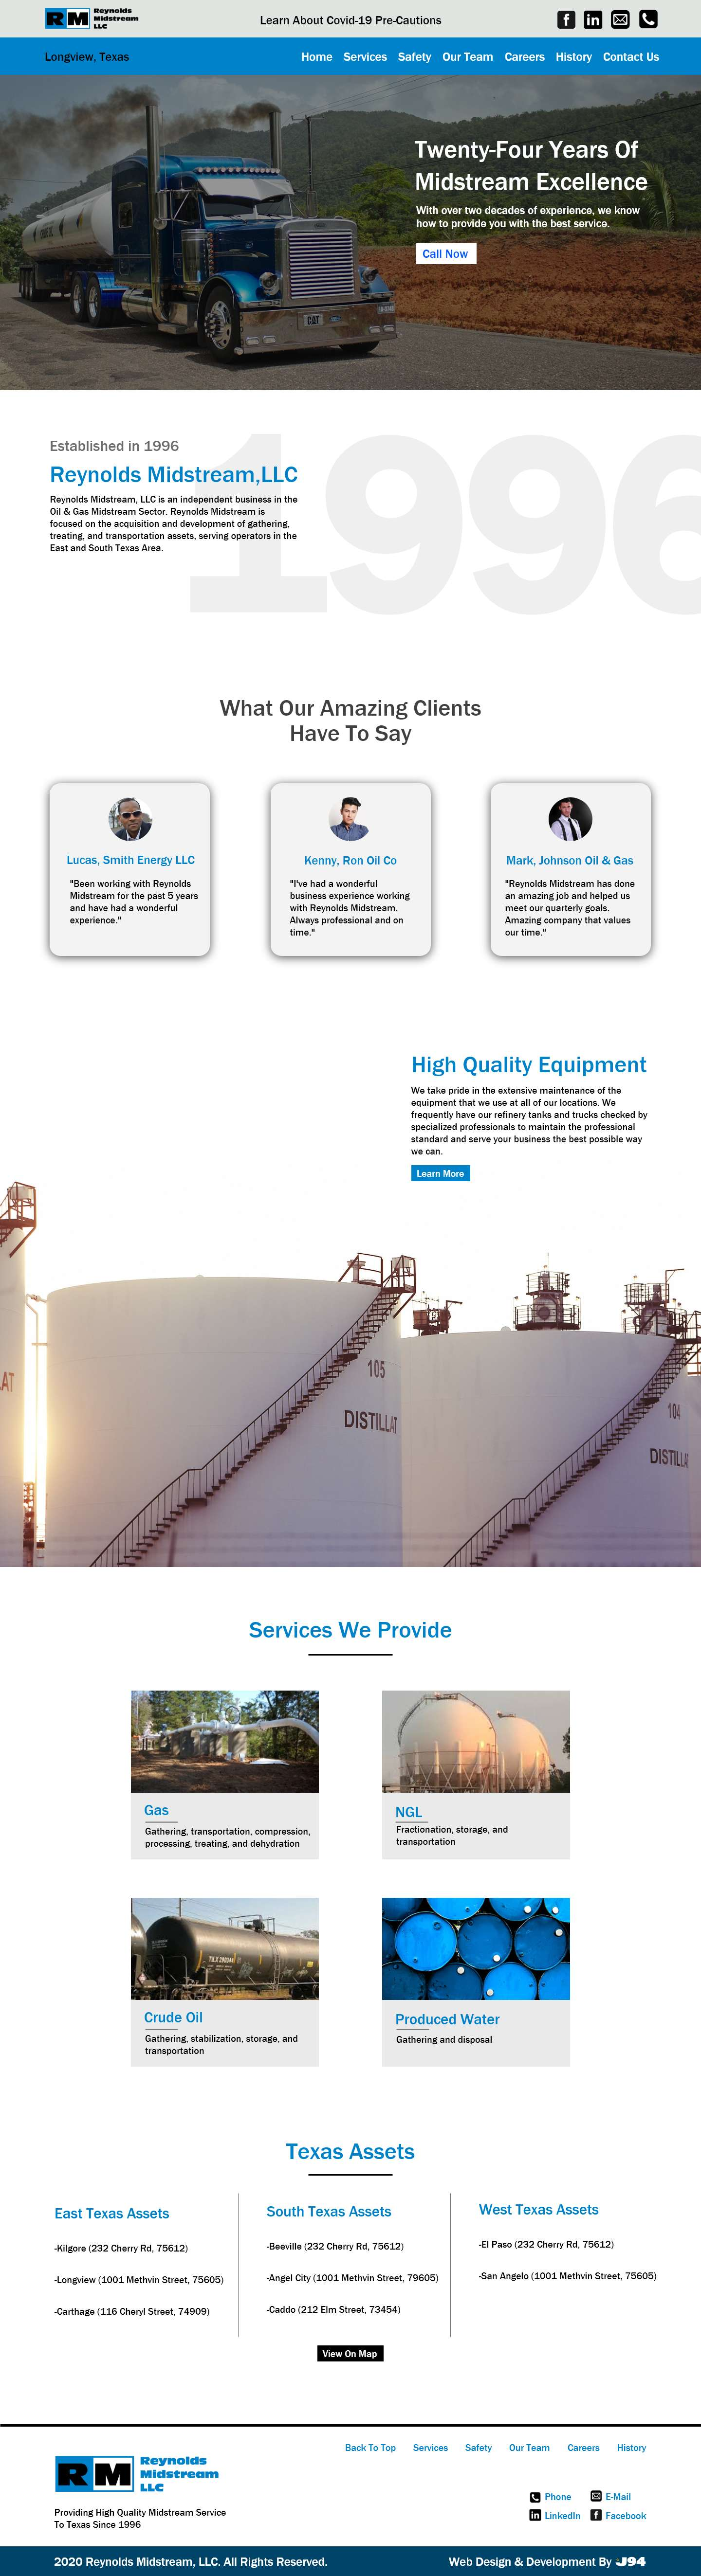 Webpage layout for a gas and oil compnay.